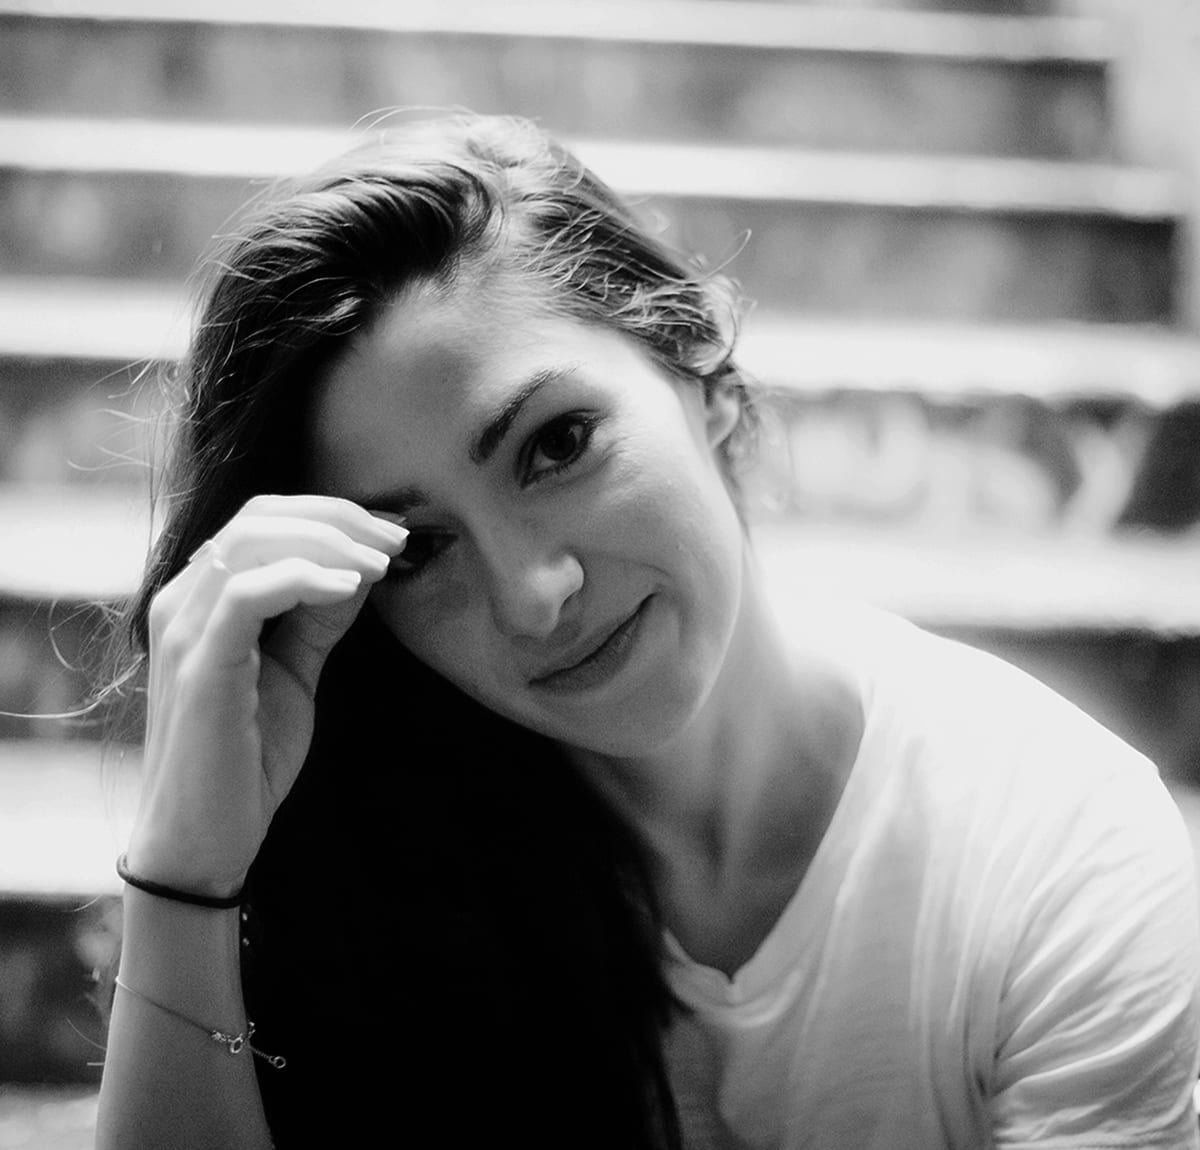 A woman in a white t shirt and with dark hair sits on steps and looks at the camera